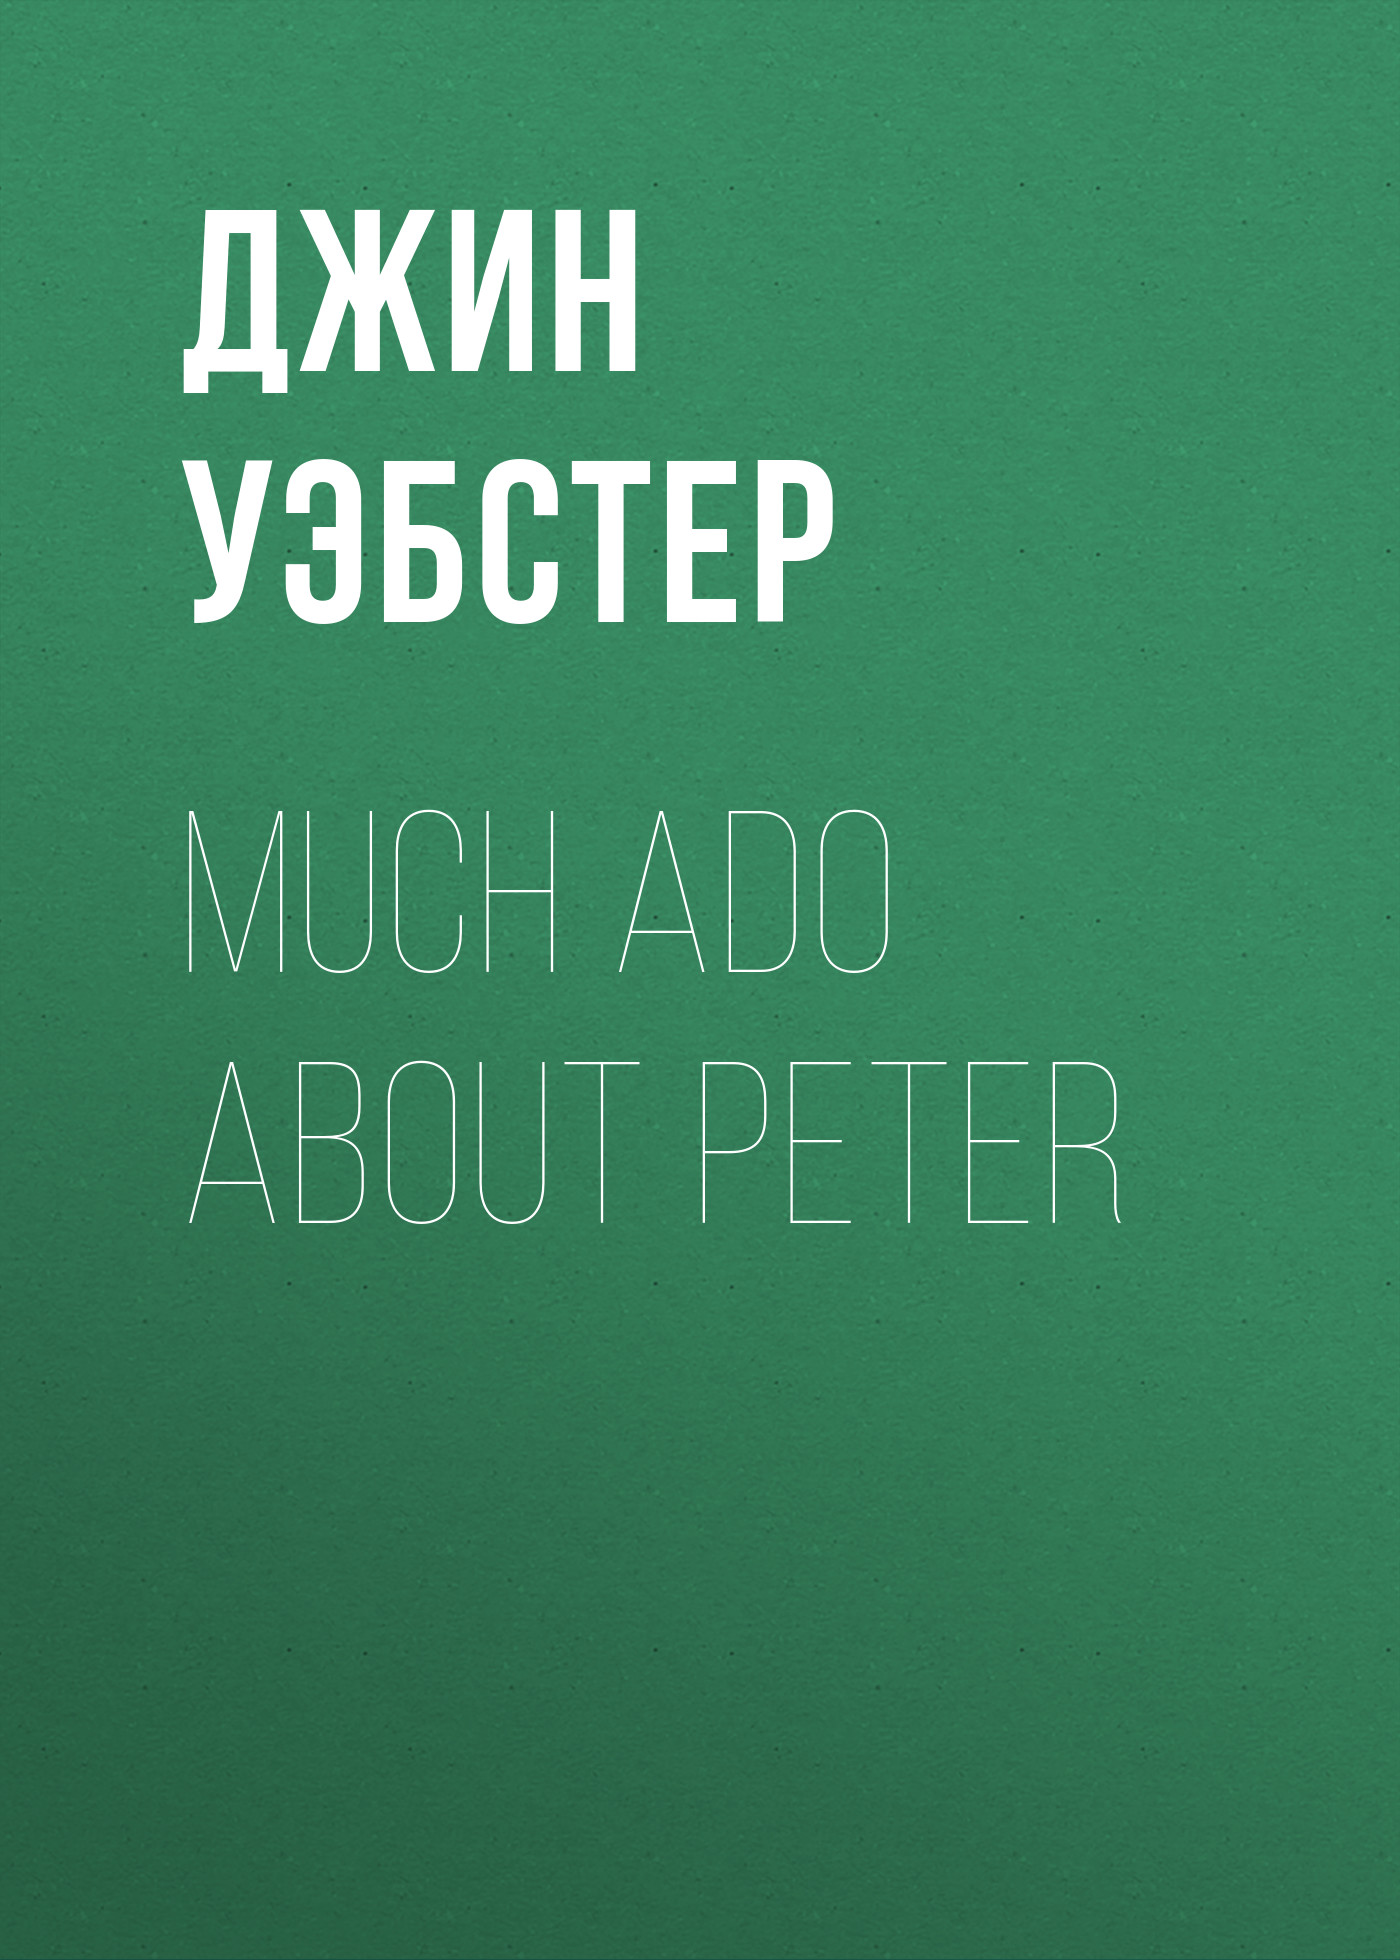 Джин Уэбстер Much Ado About Peter цена и фото